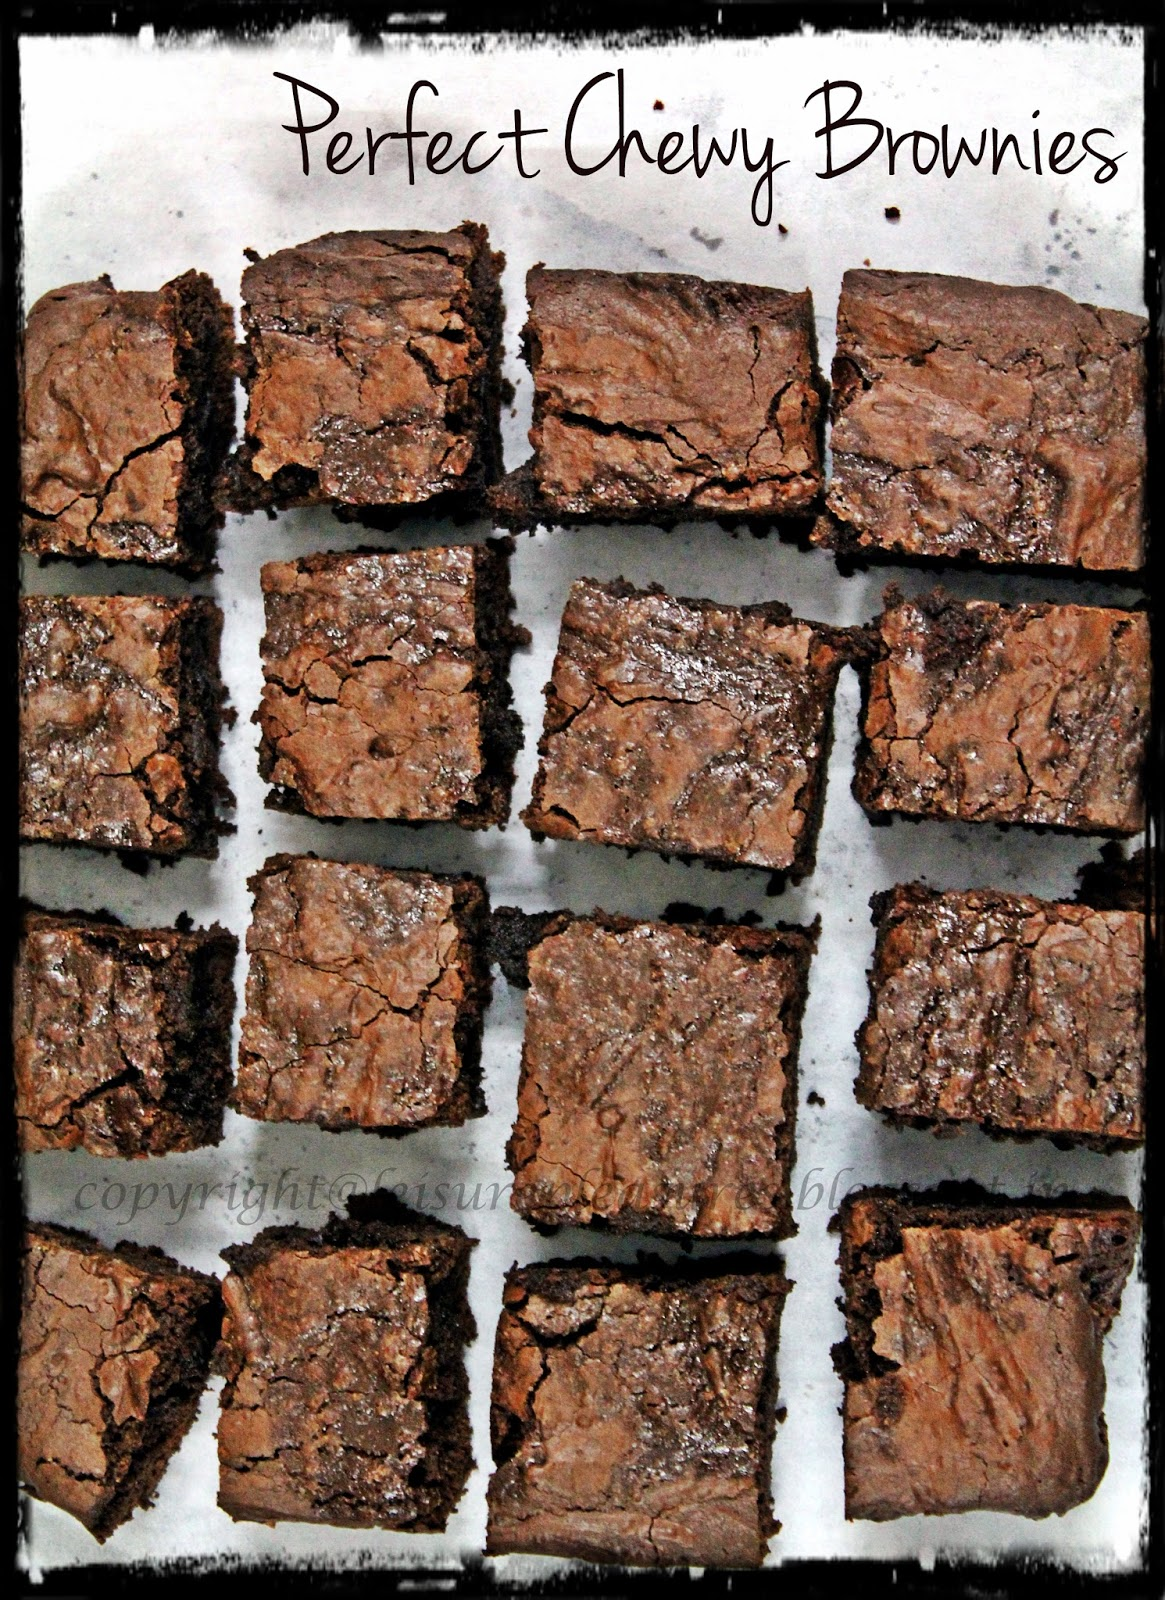 recipe: how to get flaky top on brownies [36]